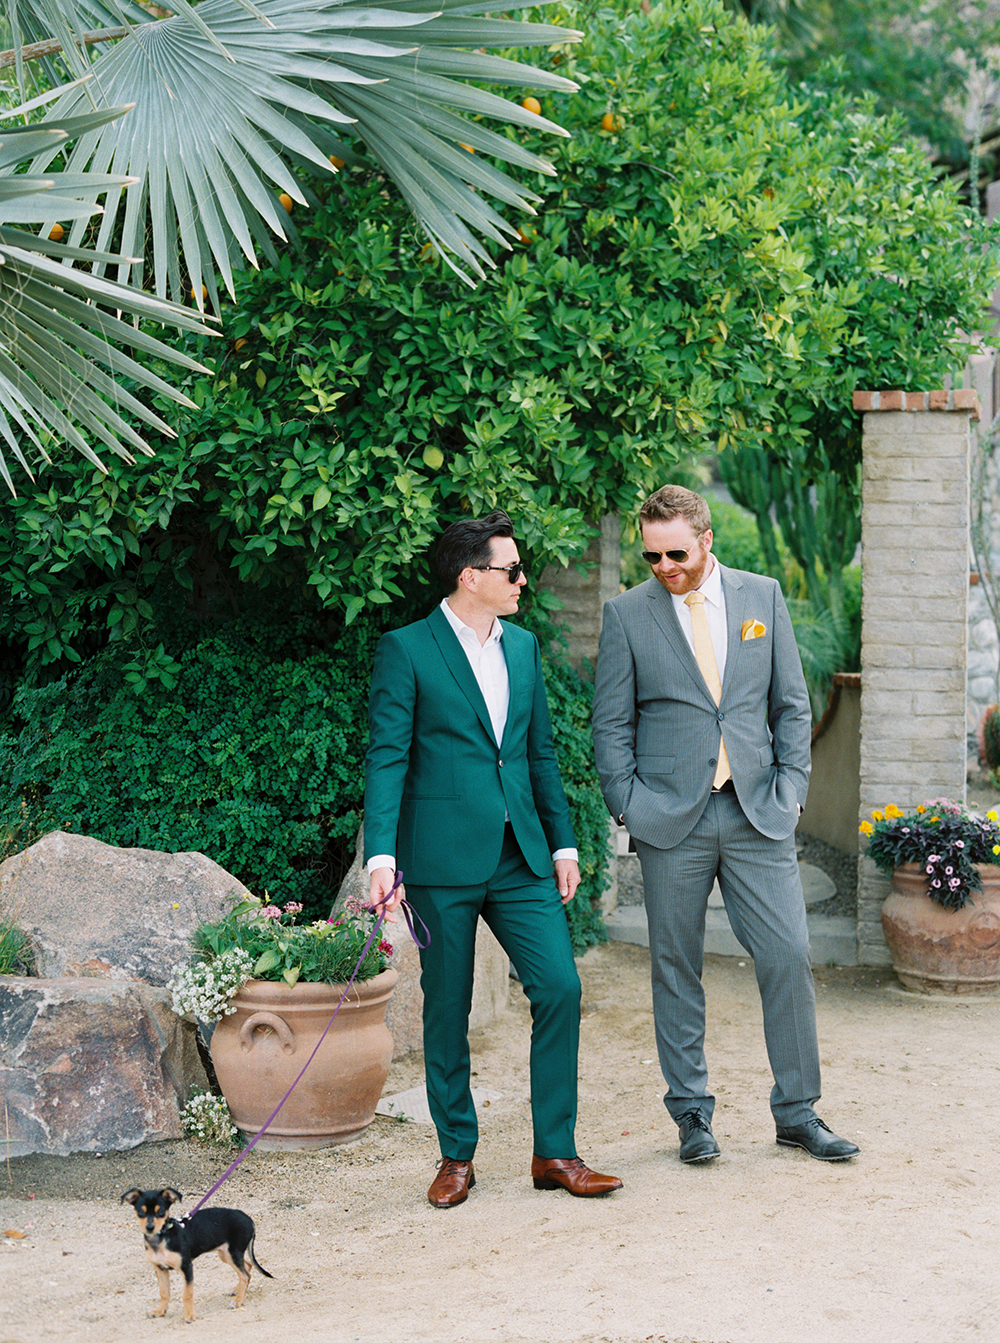 fall wedding guests attire green yellow suits